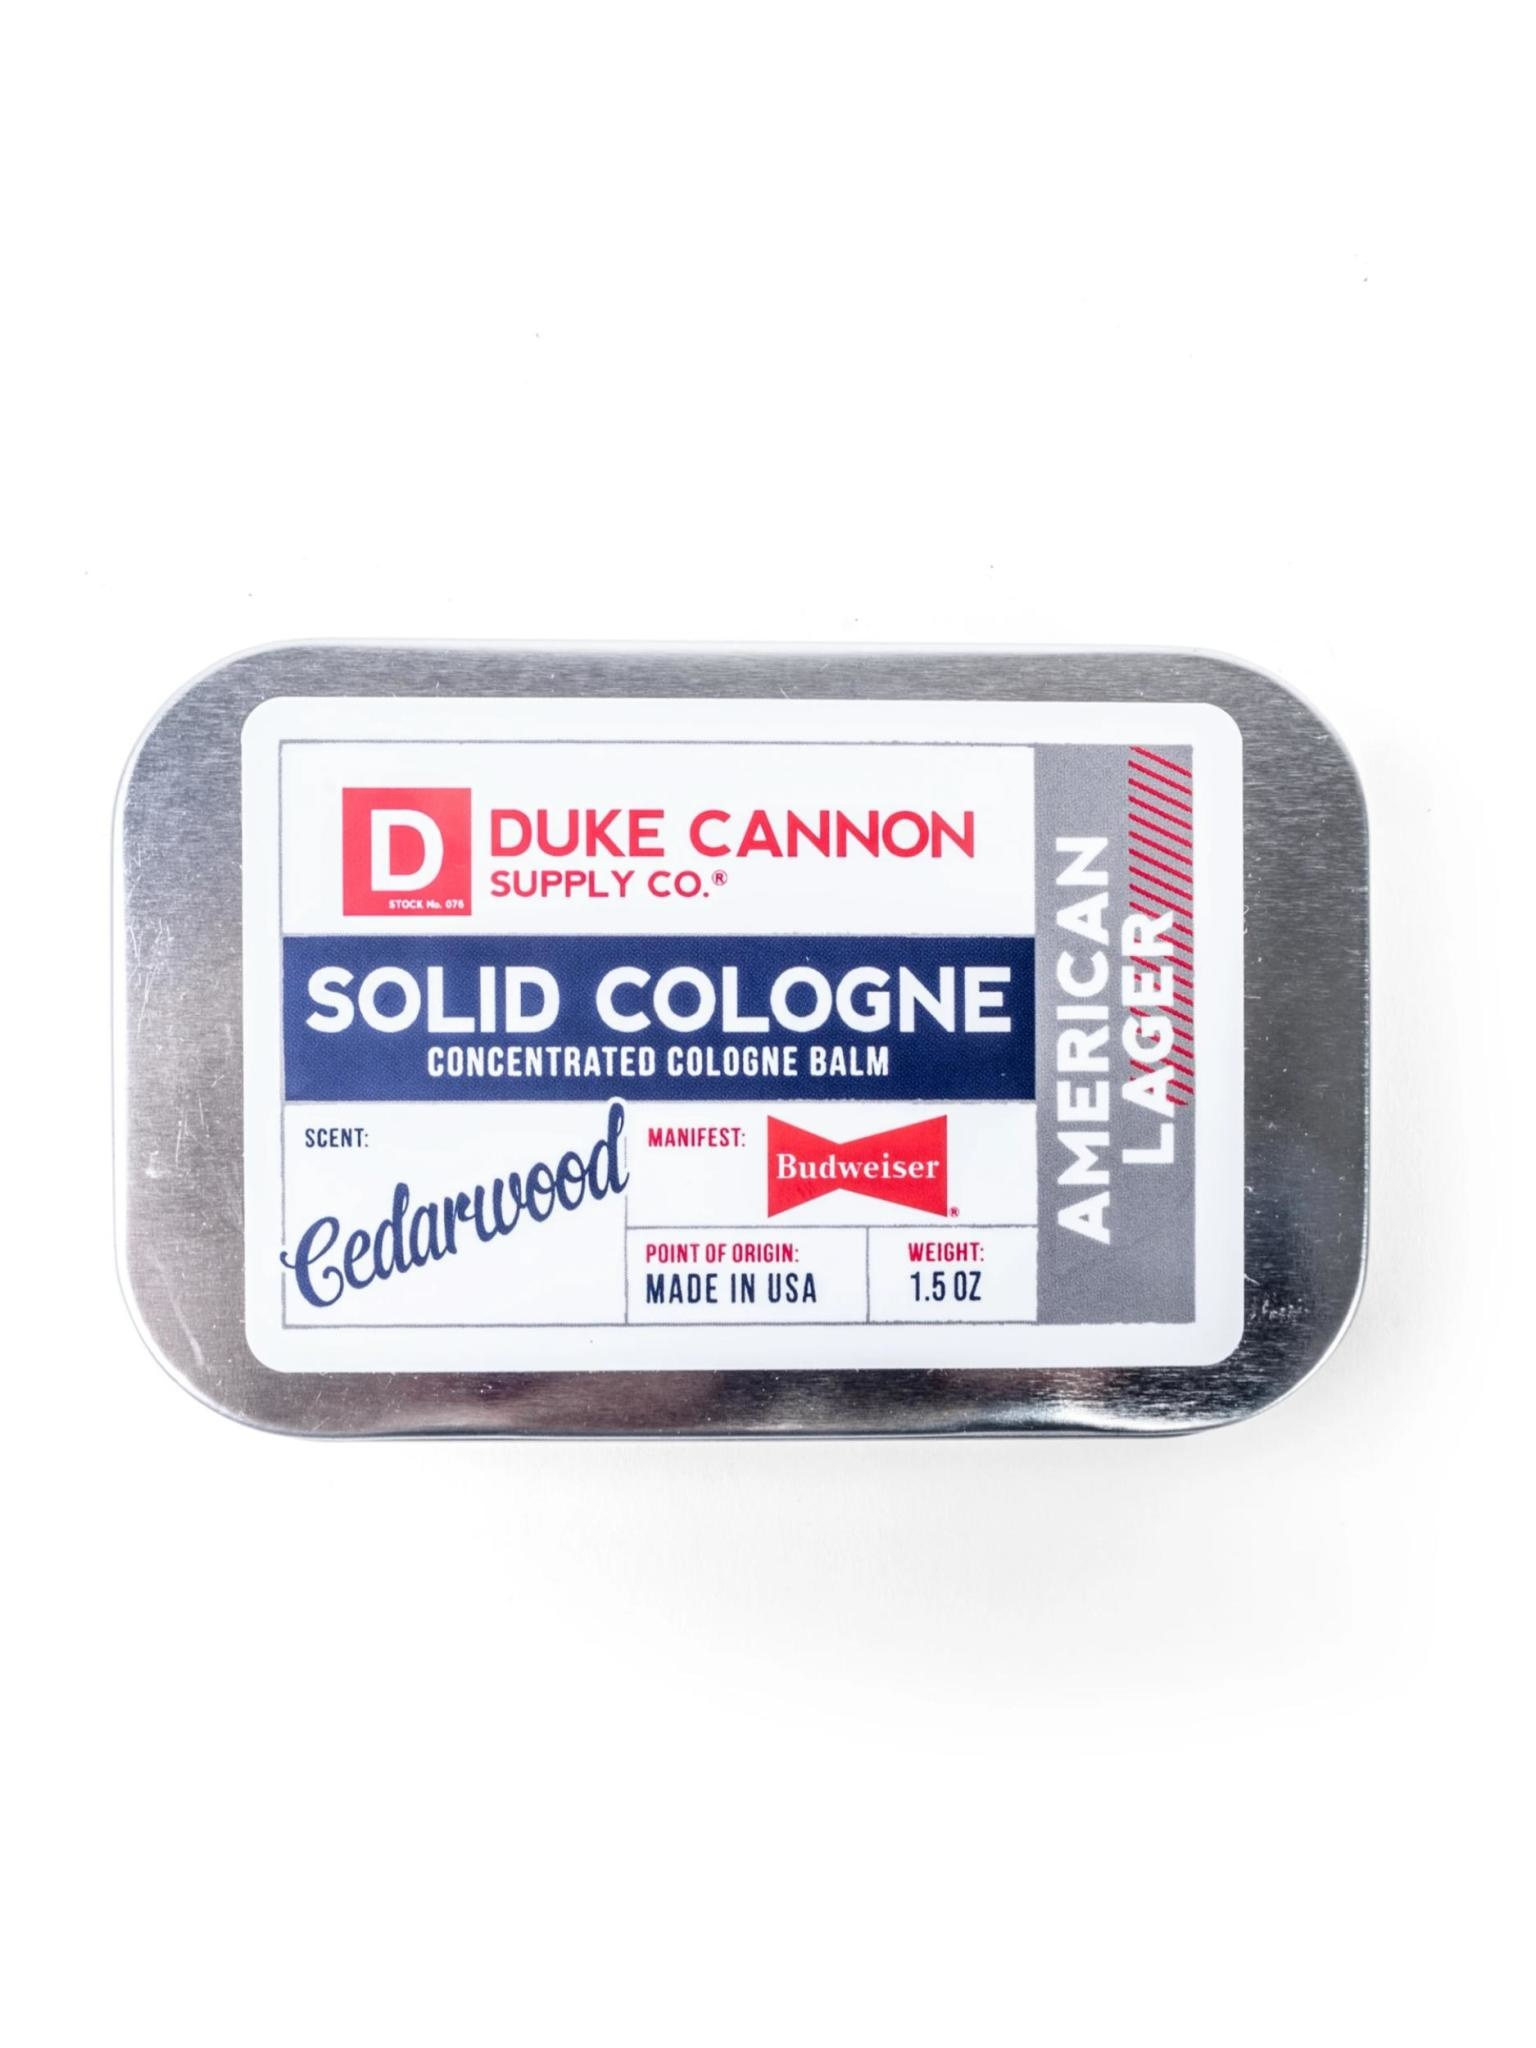 Duke Cannon Supply Co Solid Cologne Great American Budweiser